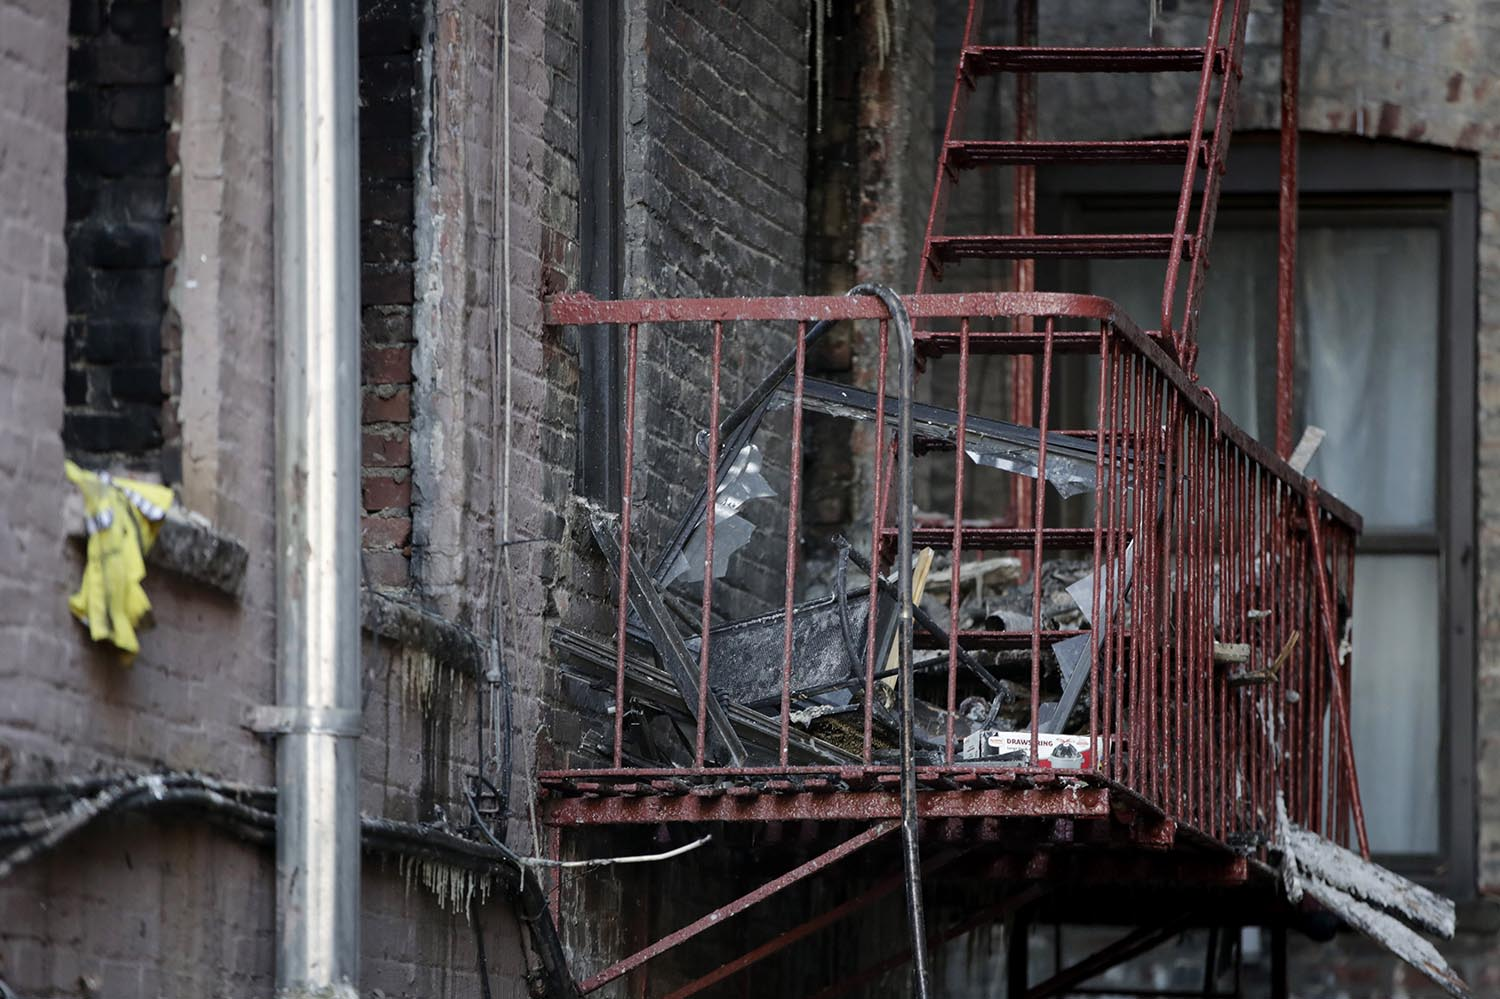 <div class='meta'><div class='origin-logo' data-origin='AP'></div><span class='caption-text' data-credit='AP Photo/Julio Cortez'>Charred items sit on the fire escape of an apartment building where more than 10 people died in a fire a day earlier in the Bronx borough of New York, Friday, Dec. 29, 2017.</span></div>